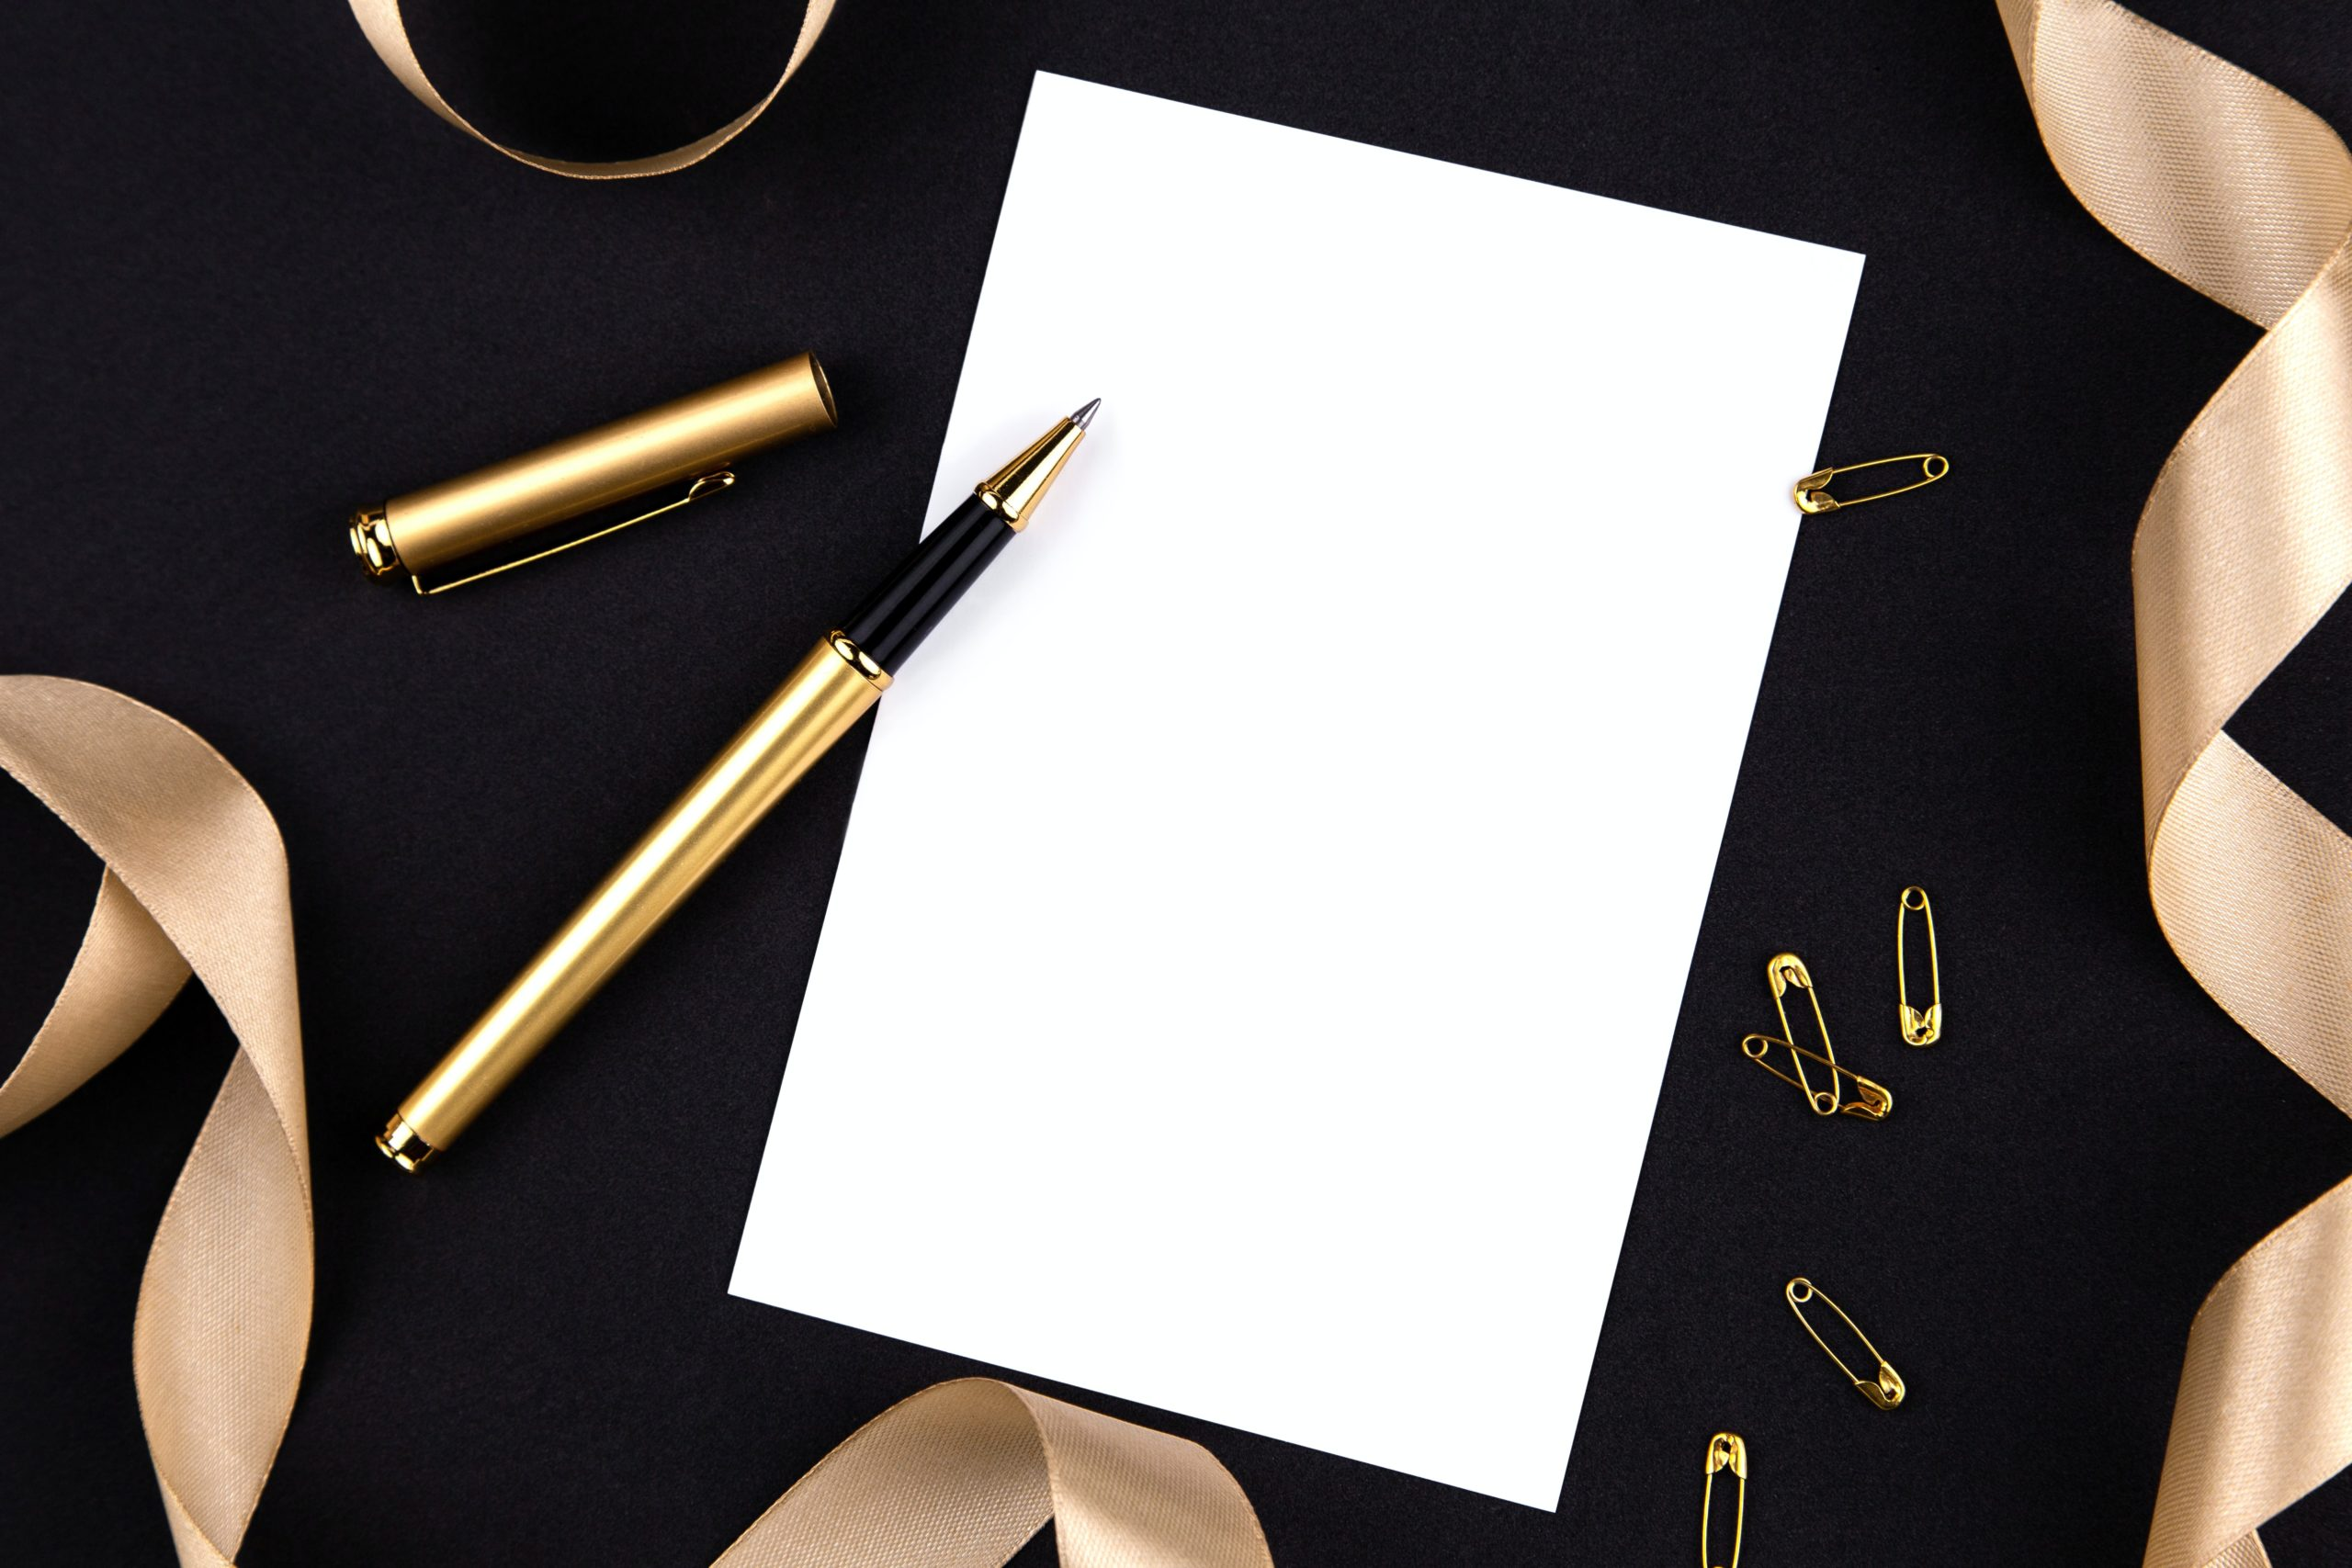 uncapped gold pen on a white piece of paper on a black background with some scattered gold safety pins and ribbons